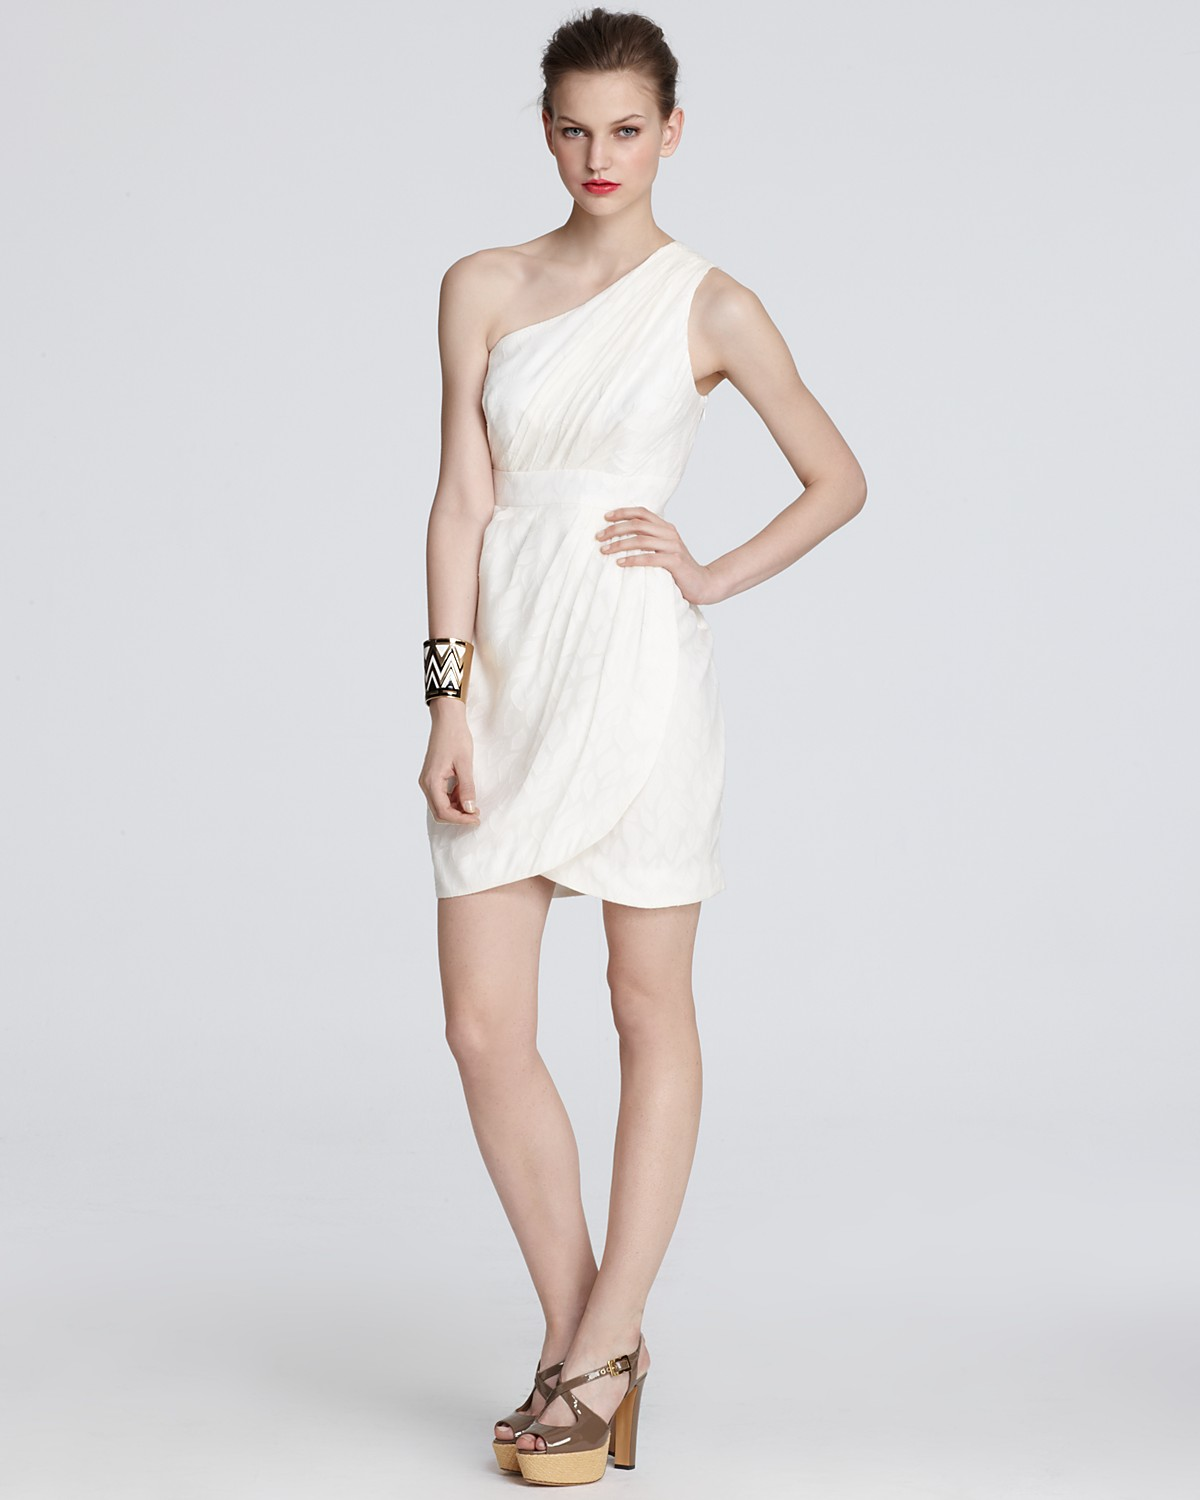 Shoshanna Dresses Bloomingdales Shoshanna Dress Melanee One